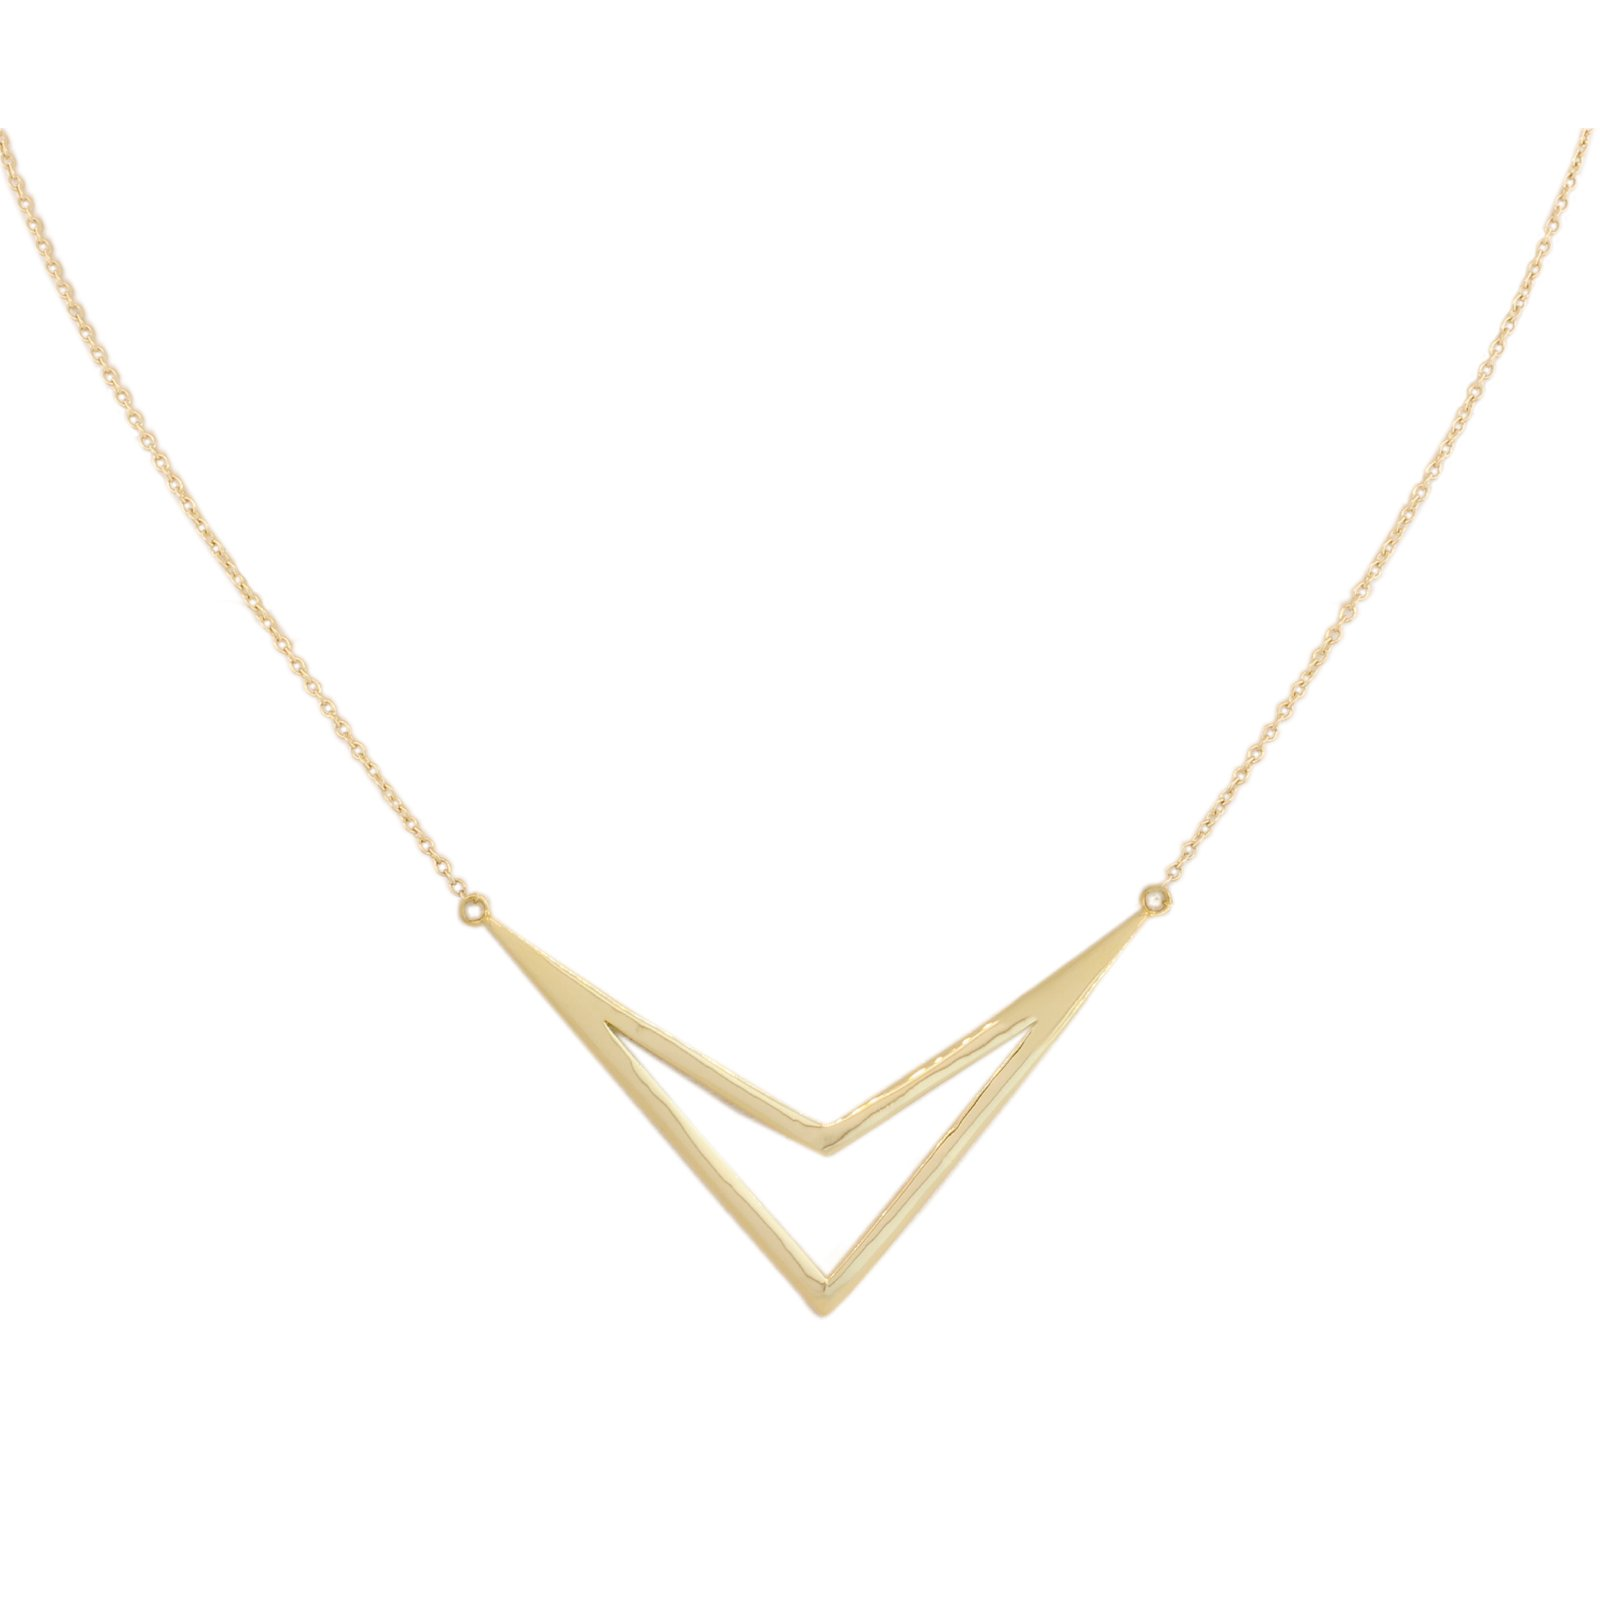 Stackable Style Arrow Necklace Yellow Gold 14k Necklace Trendy Arrow 17 inch